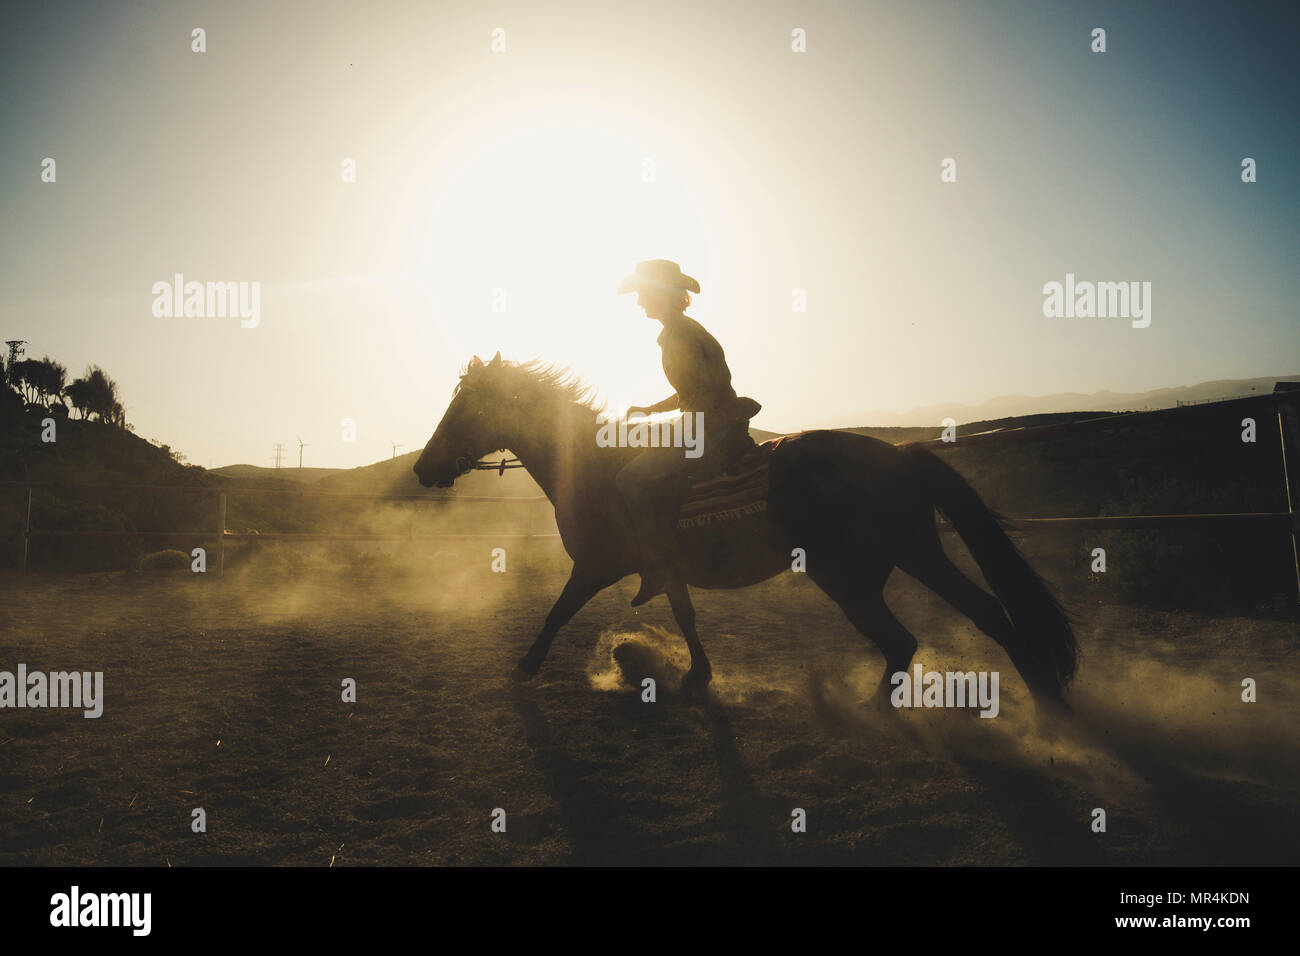 beautiful girl ride a horse in silhouette and backlight with sunflare and dust from the ground. epic and heroes image for speed and cowbot life and ad - Stock Image